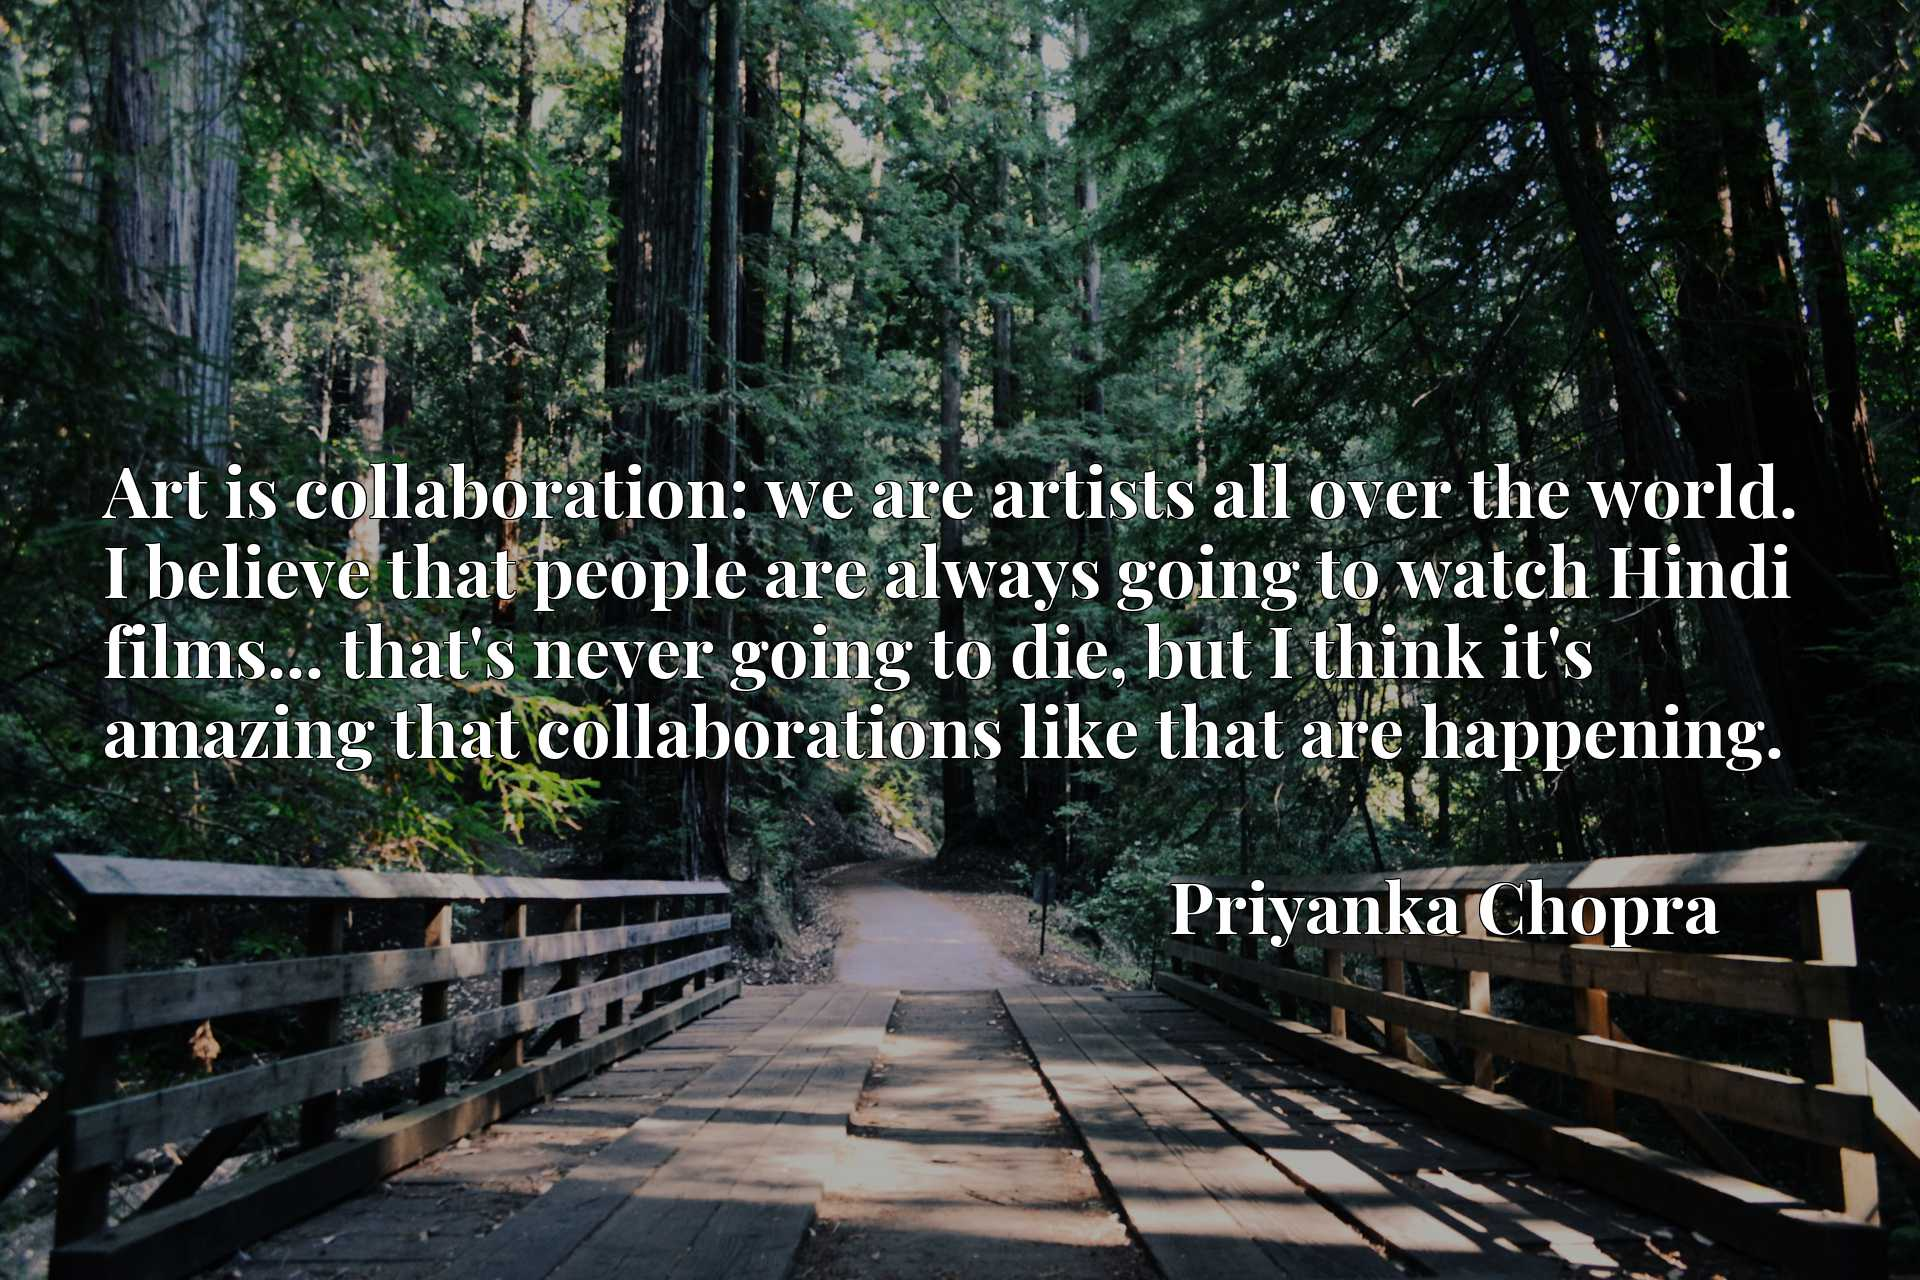 Art is collaboration: we are artists all over the world. I believe that people are always going to watch Hindi films... that's never going to die, but I think it's amazing that collaborations like that are happening.